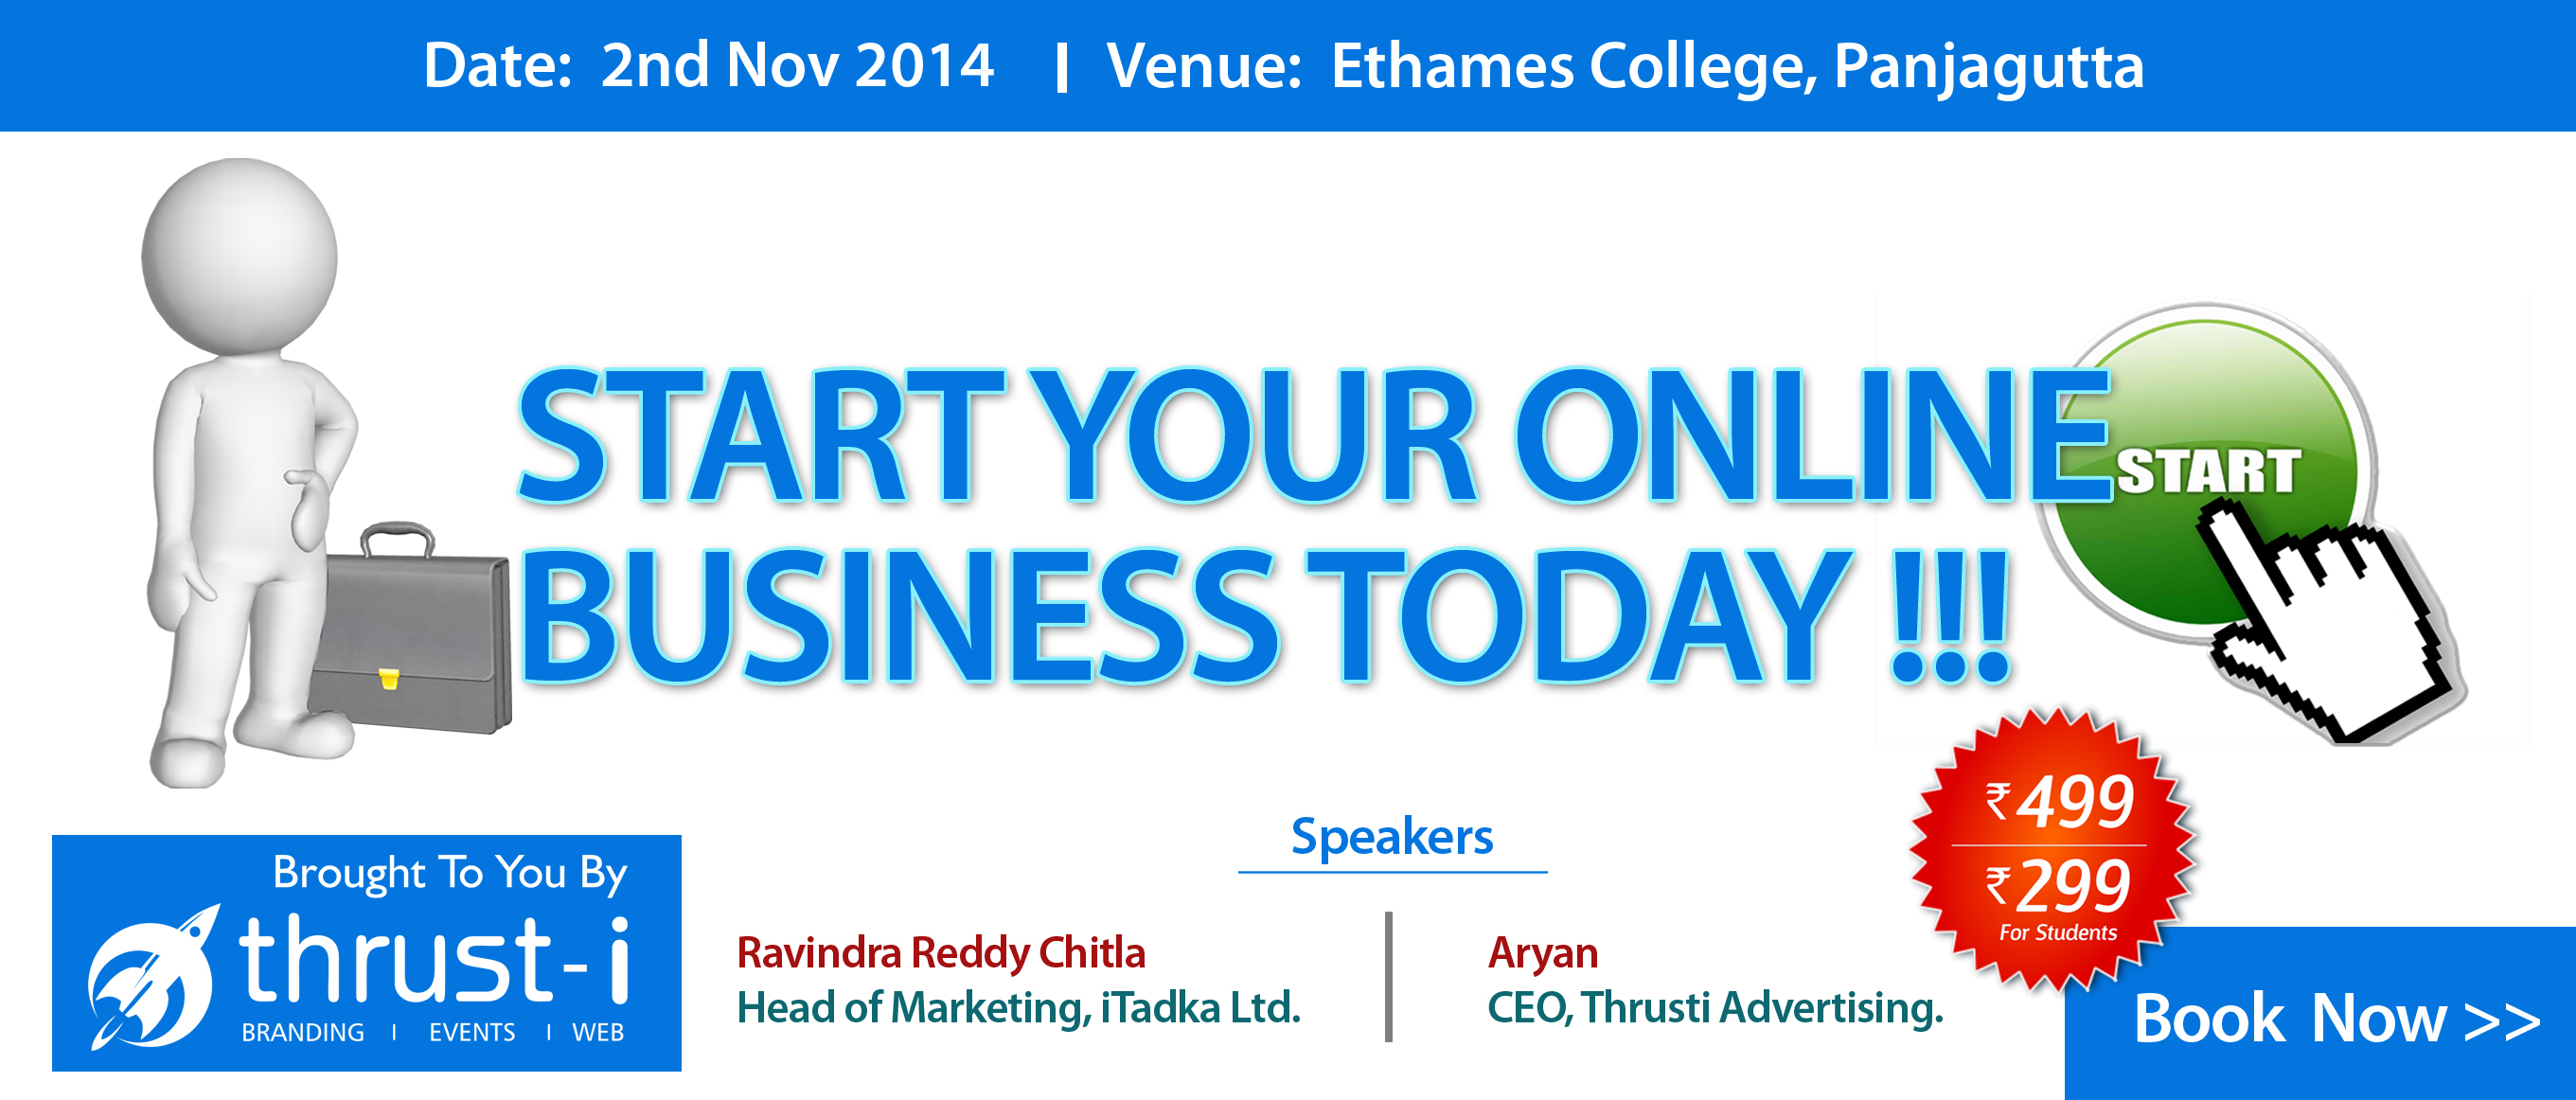 start your online business today hyderabad meraevents com start your online business today